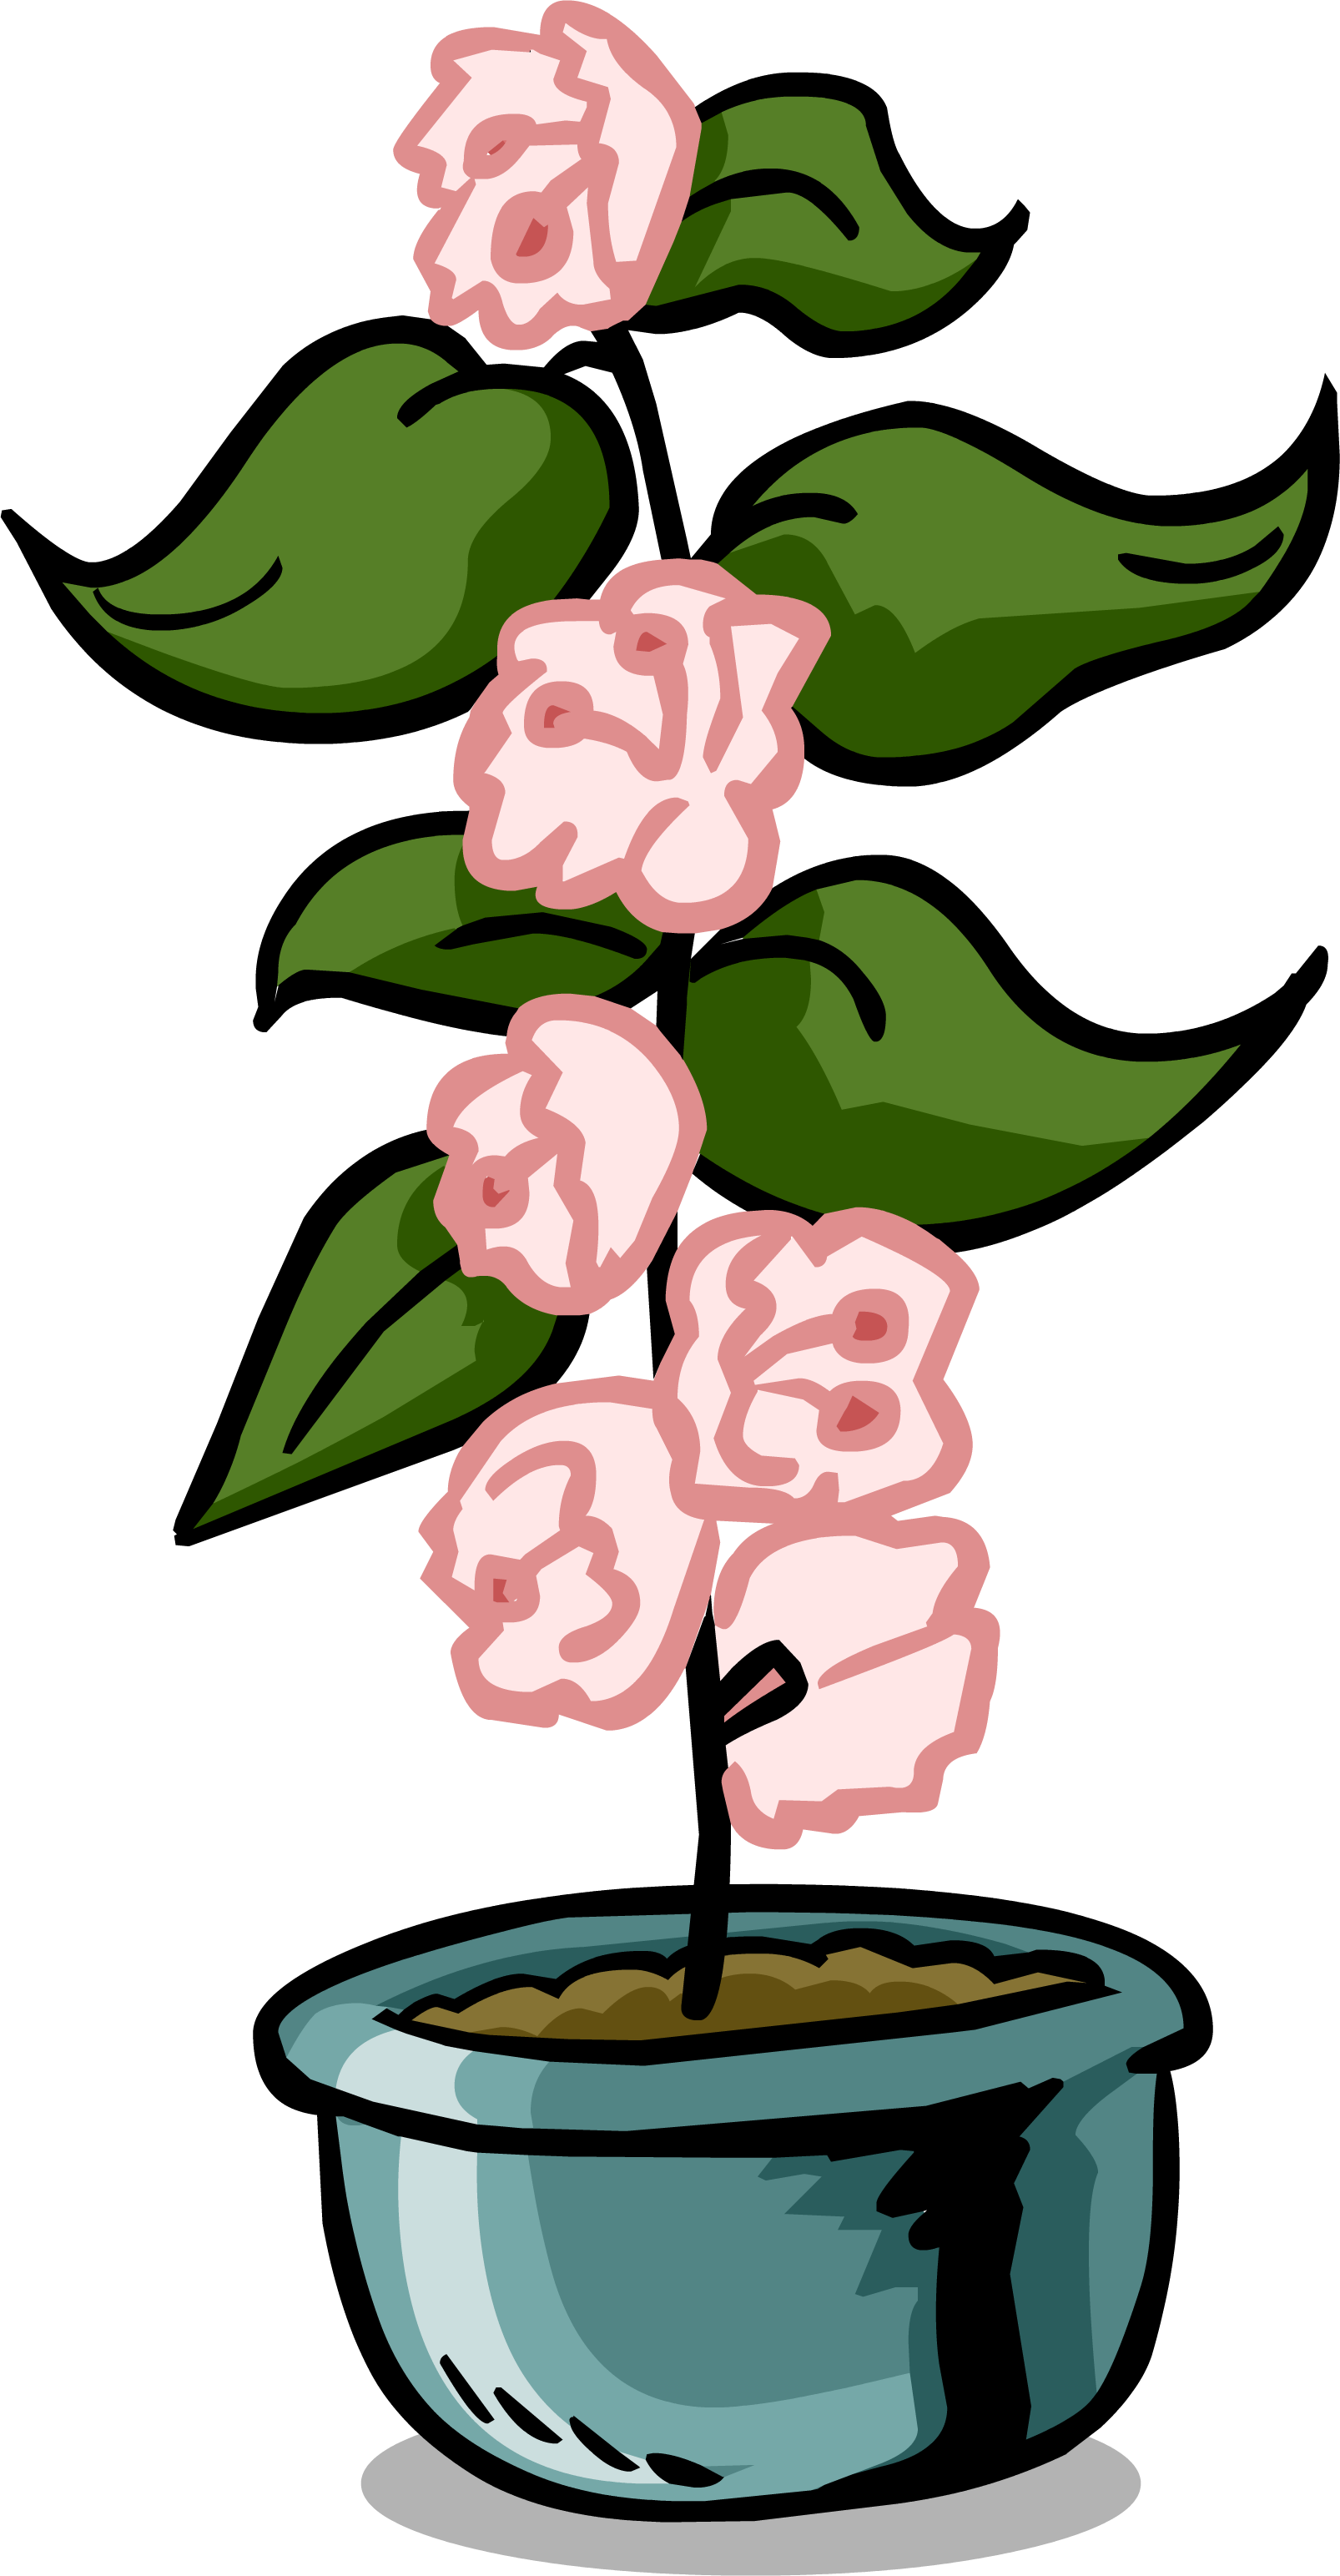 Growth clipart flower cycle. Growing plants club penguin